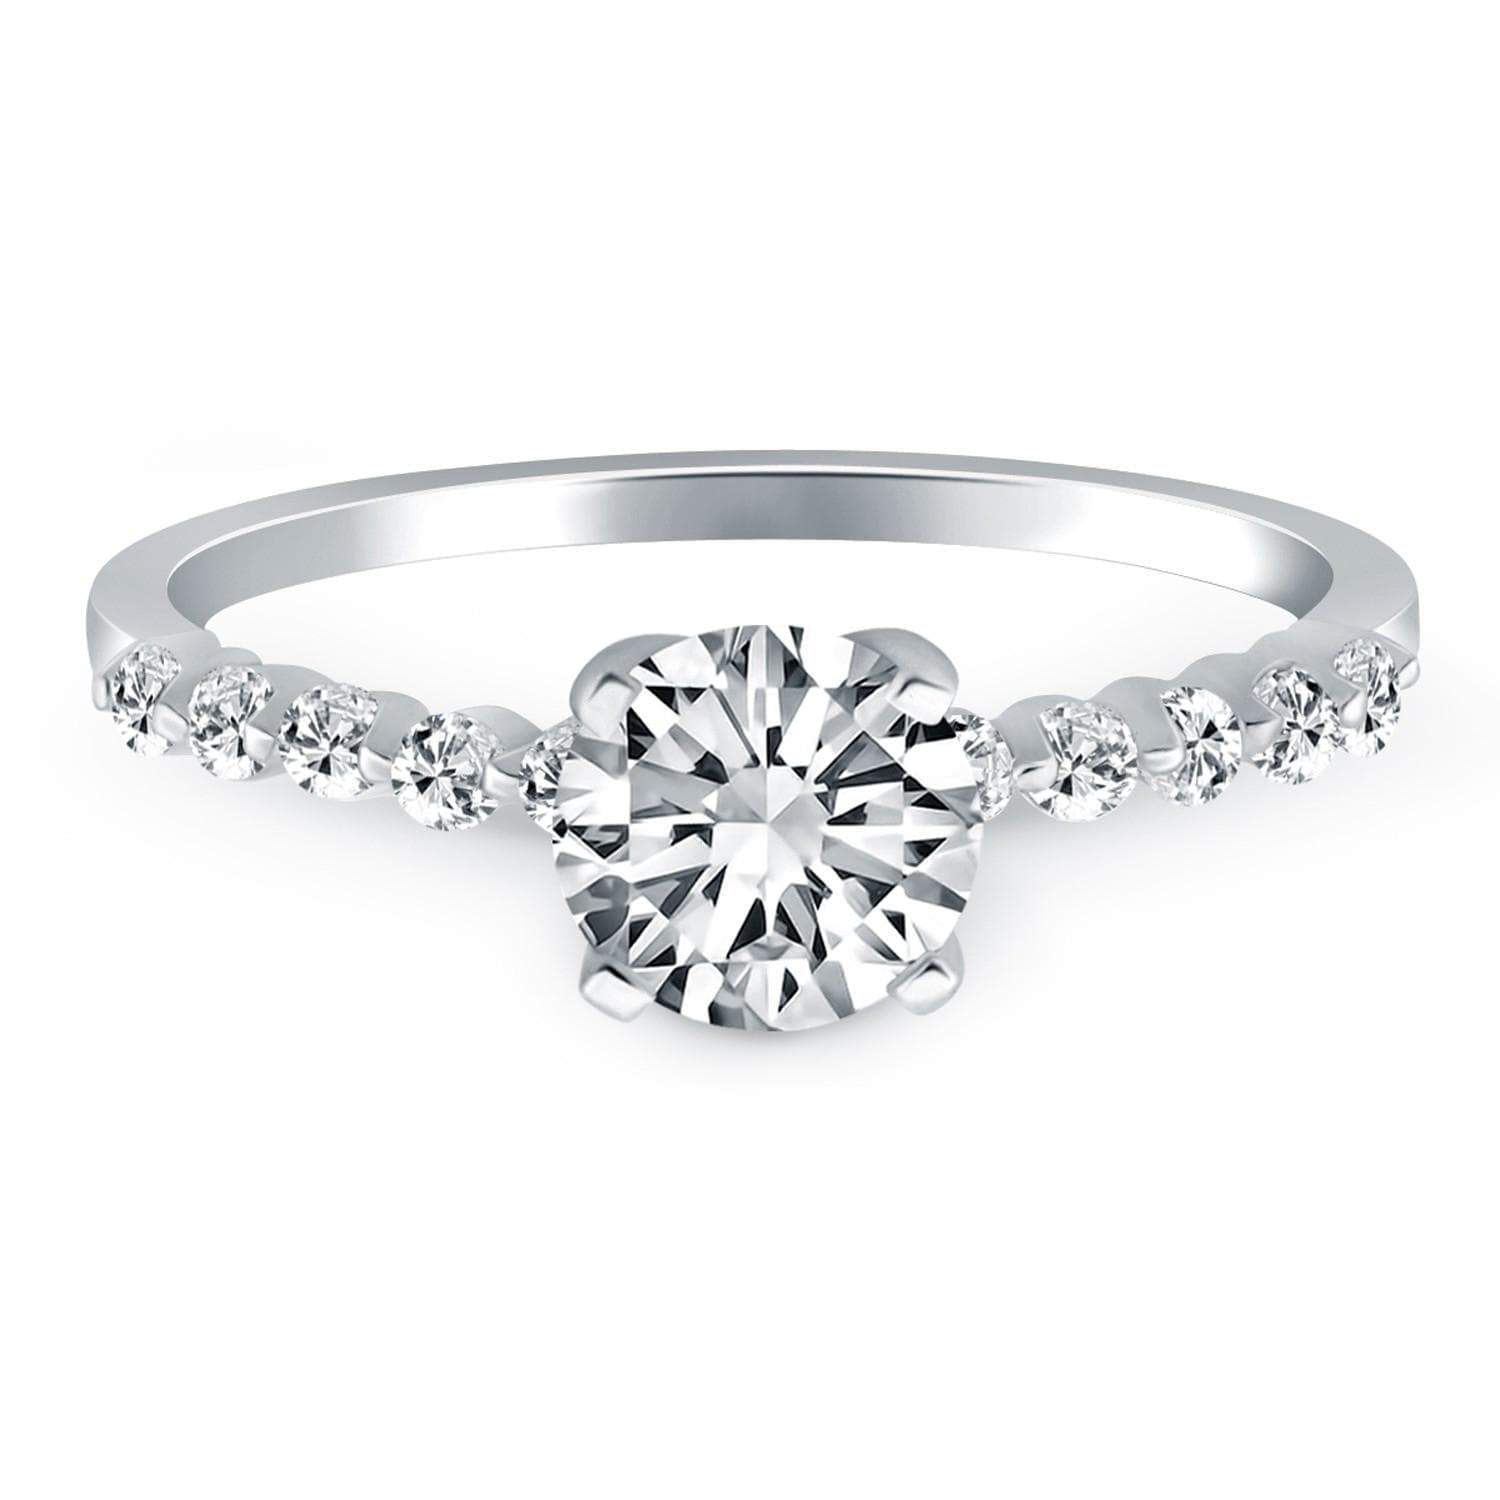 Wedding & Engagement Jewelry 7.5 14k White Gold Diamond Engagement Ring with Shared Prong Diamond Accents RJ86403-7.5